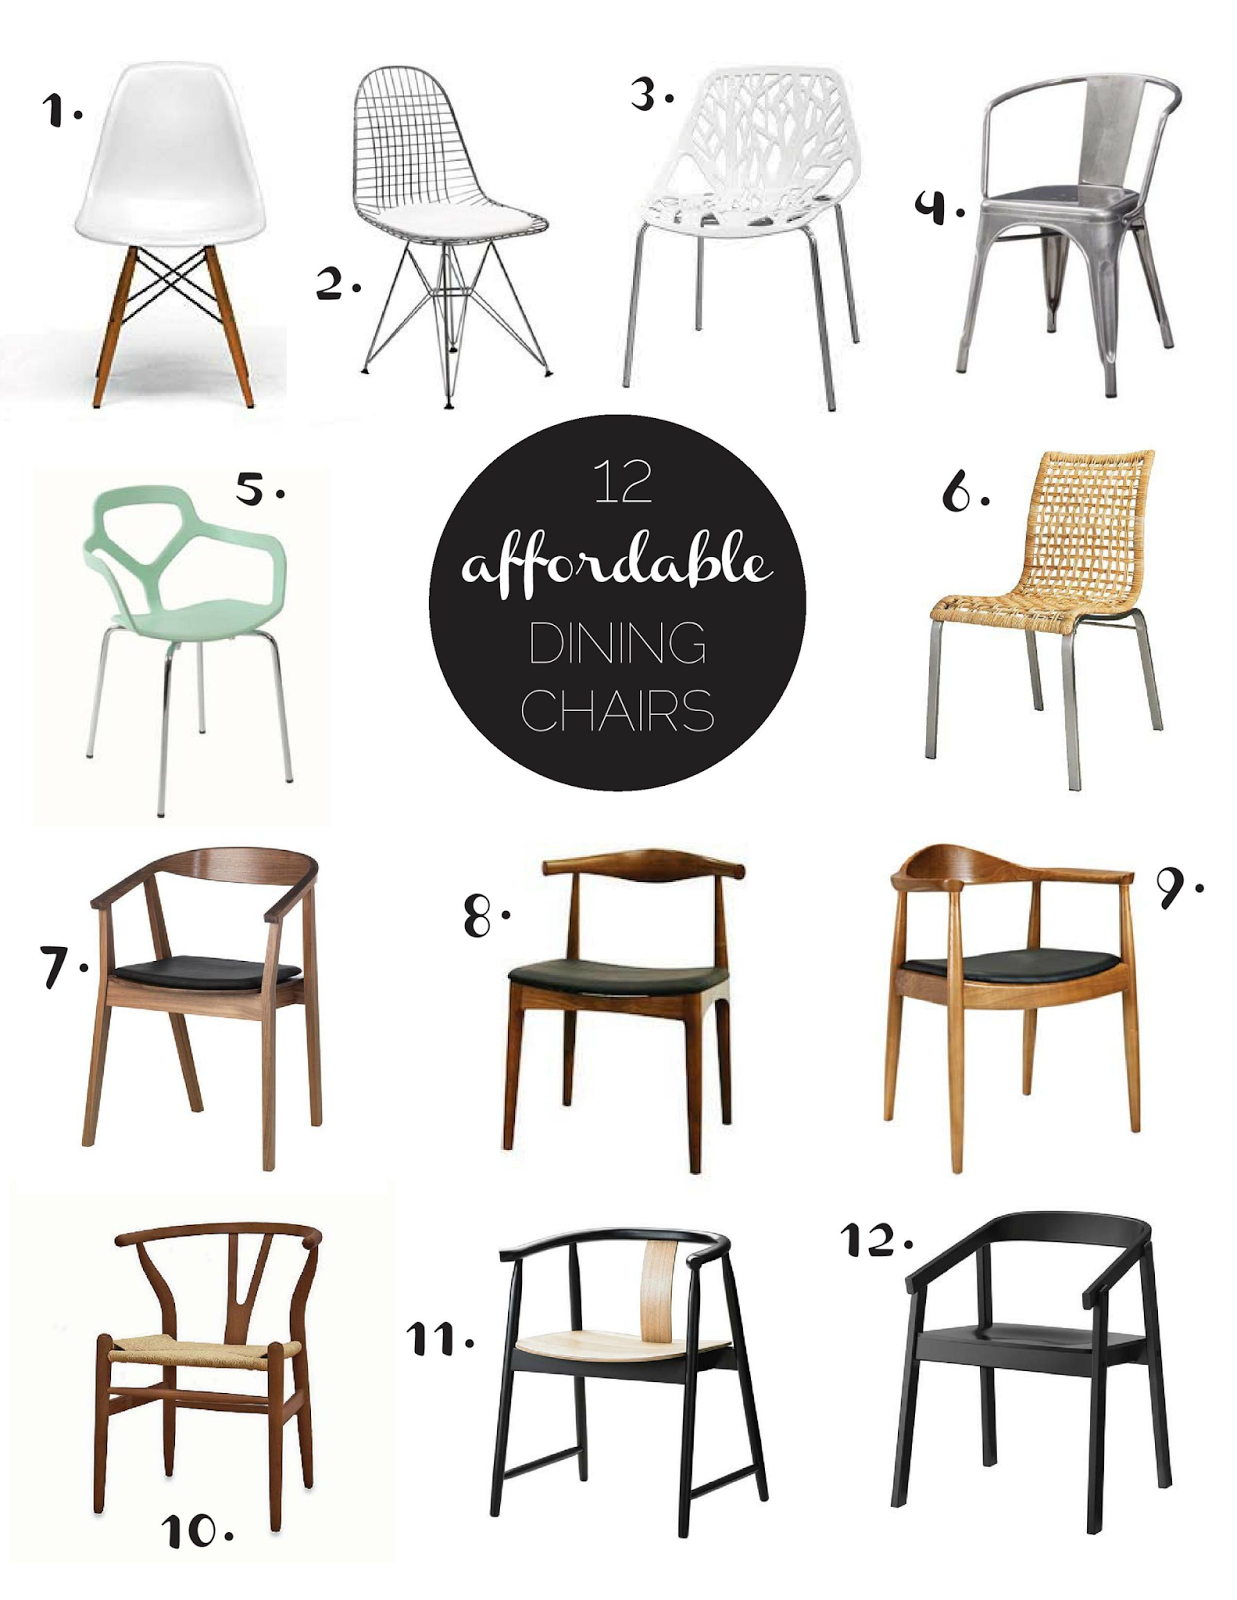 Affordable Dining Chairs   The Twisted Horn